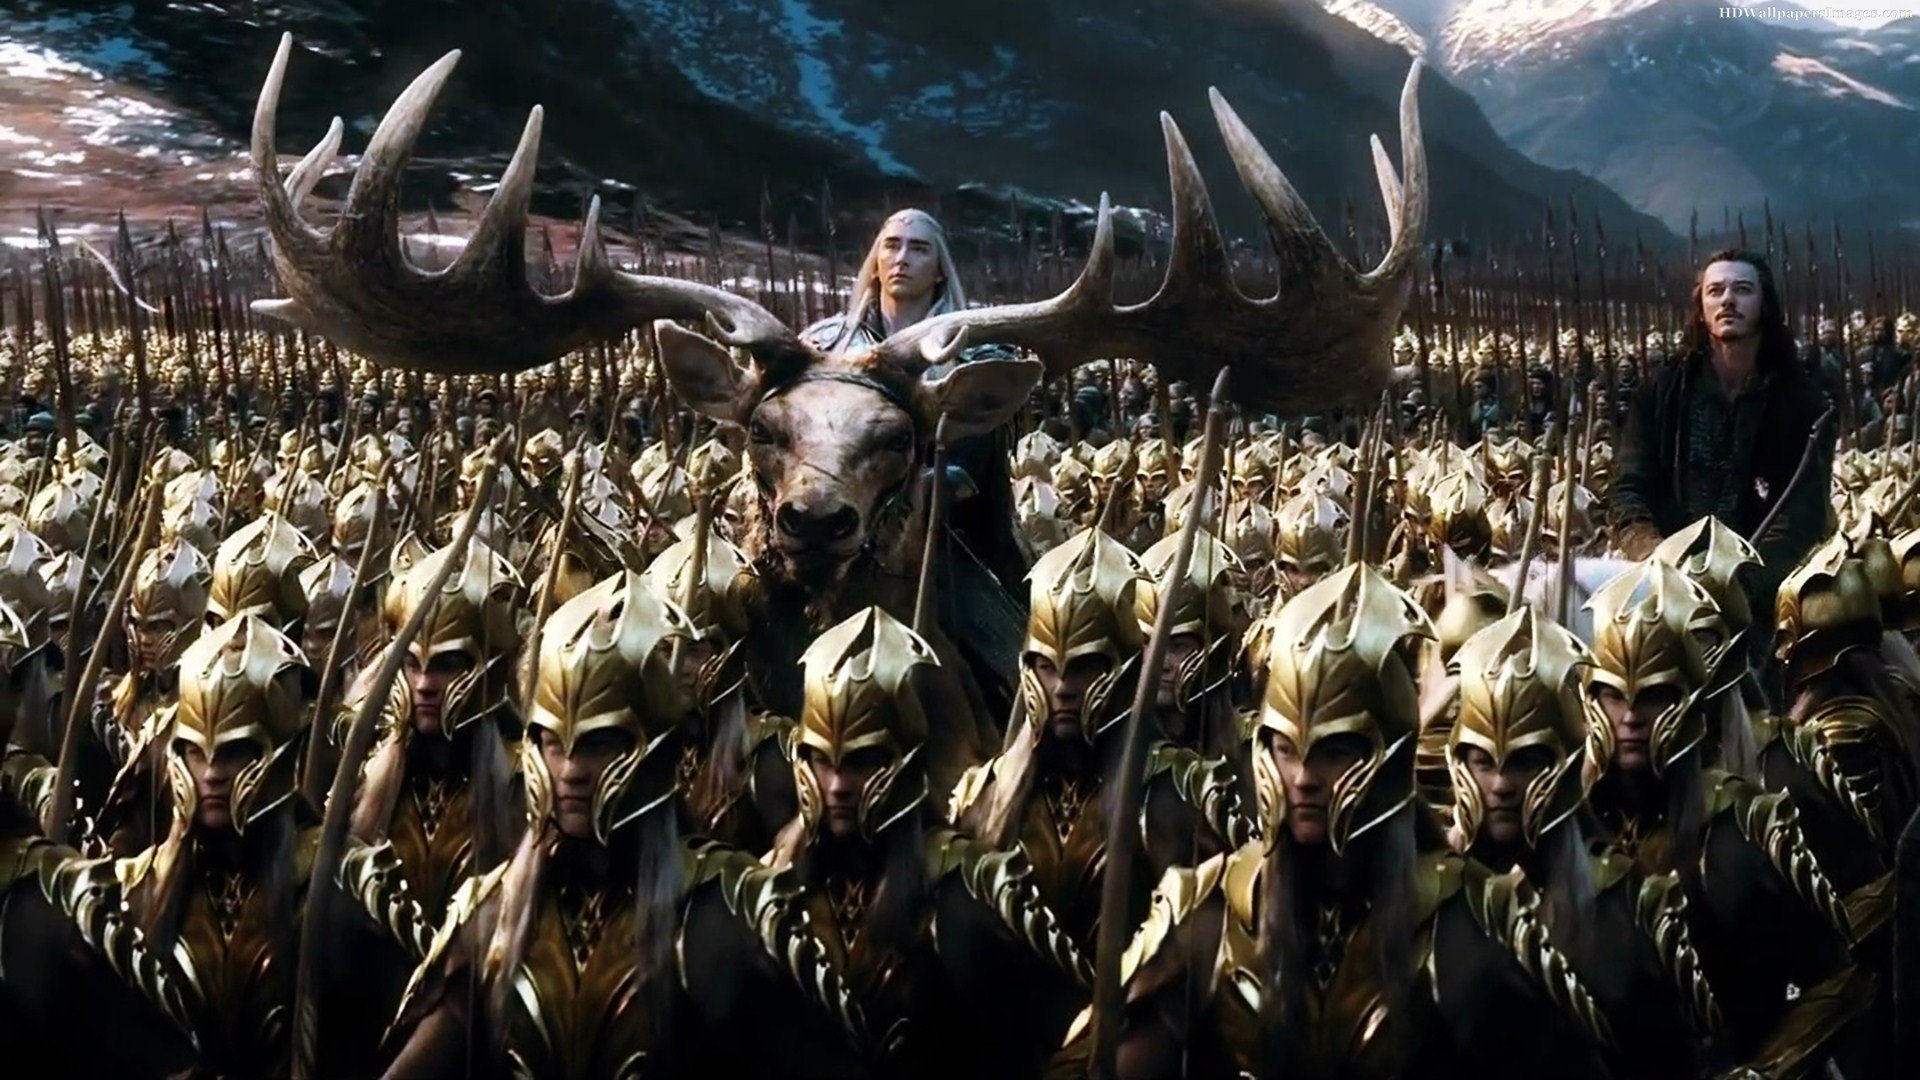 Lee-Pace-and-Luke-Evans-in-The-Hobbit-Battle-of-the-Five-Armies